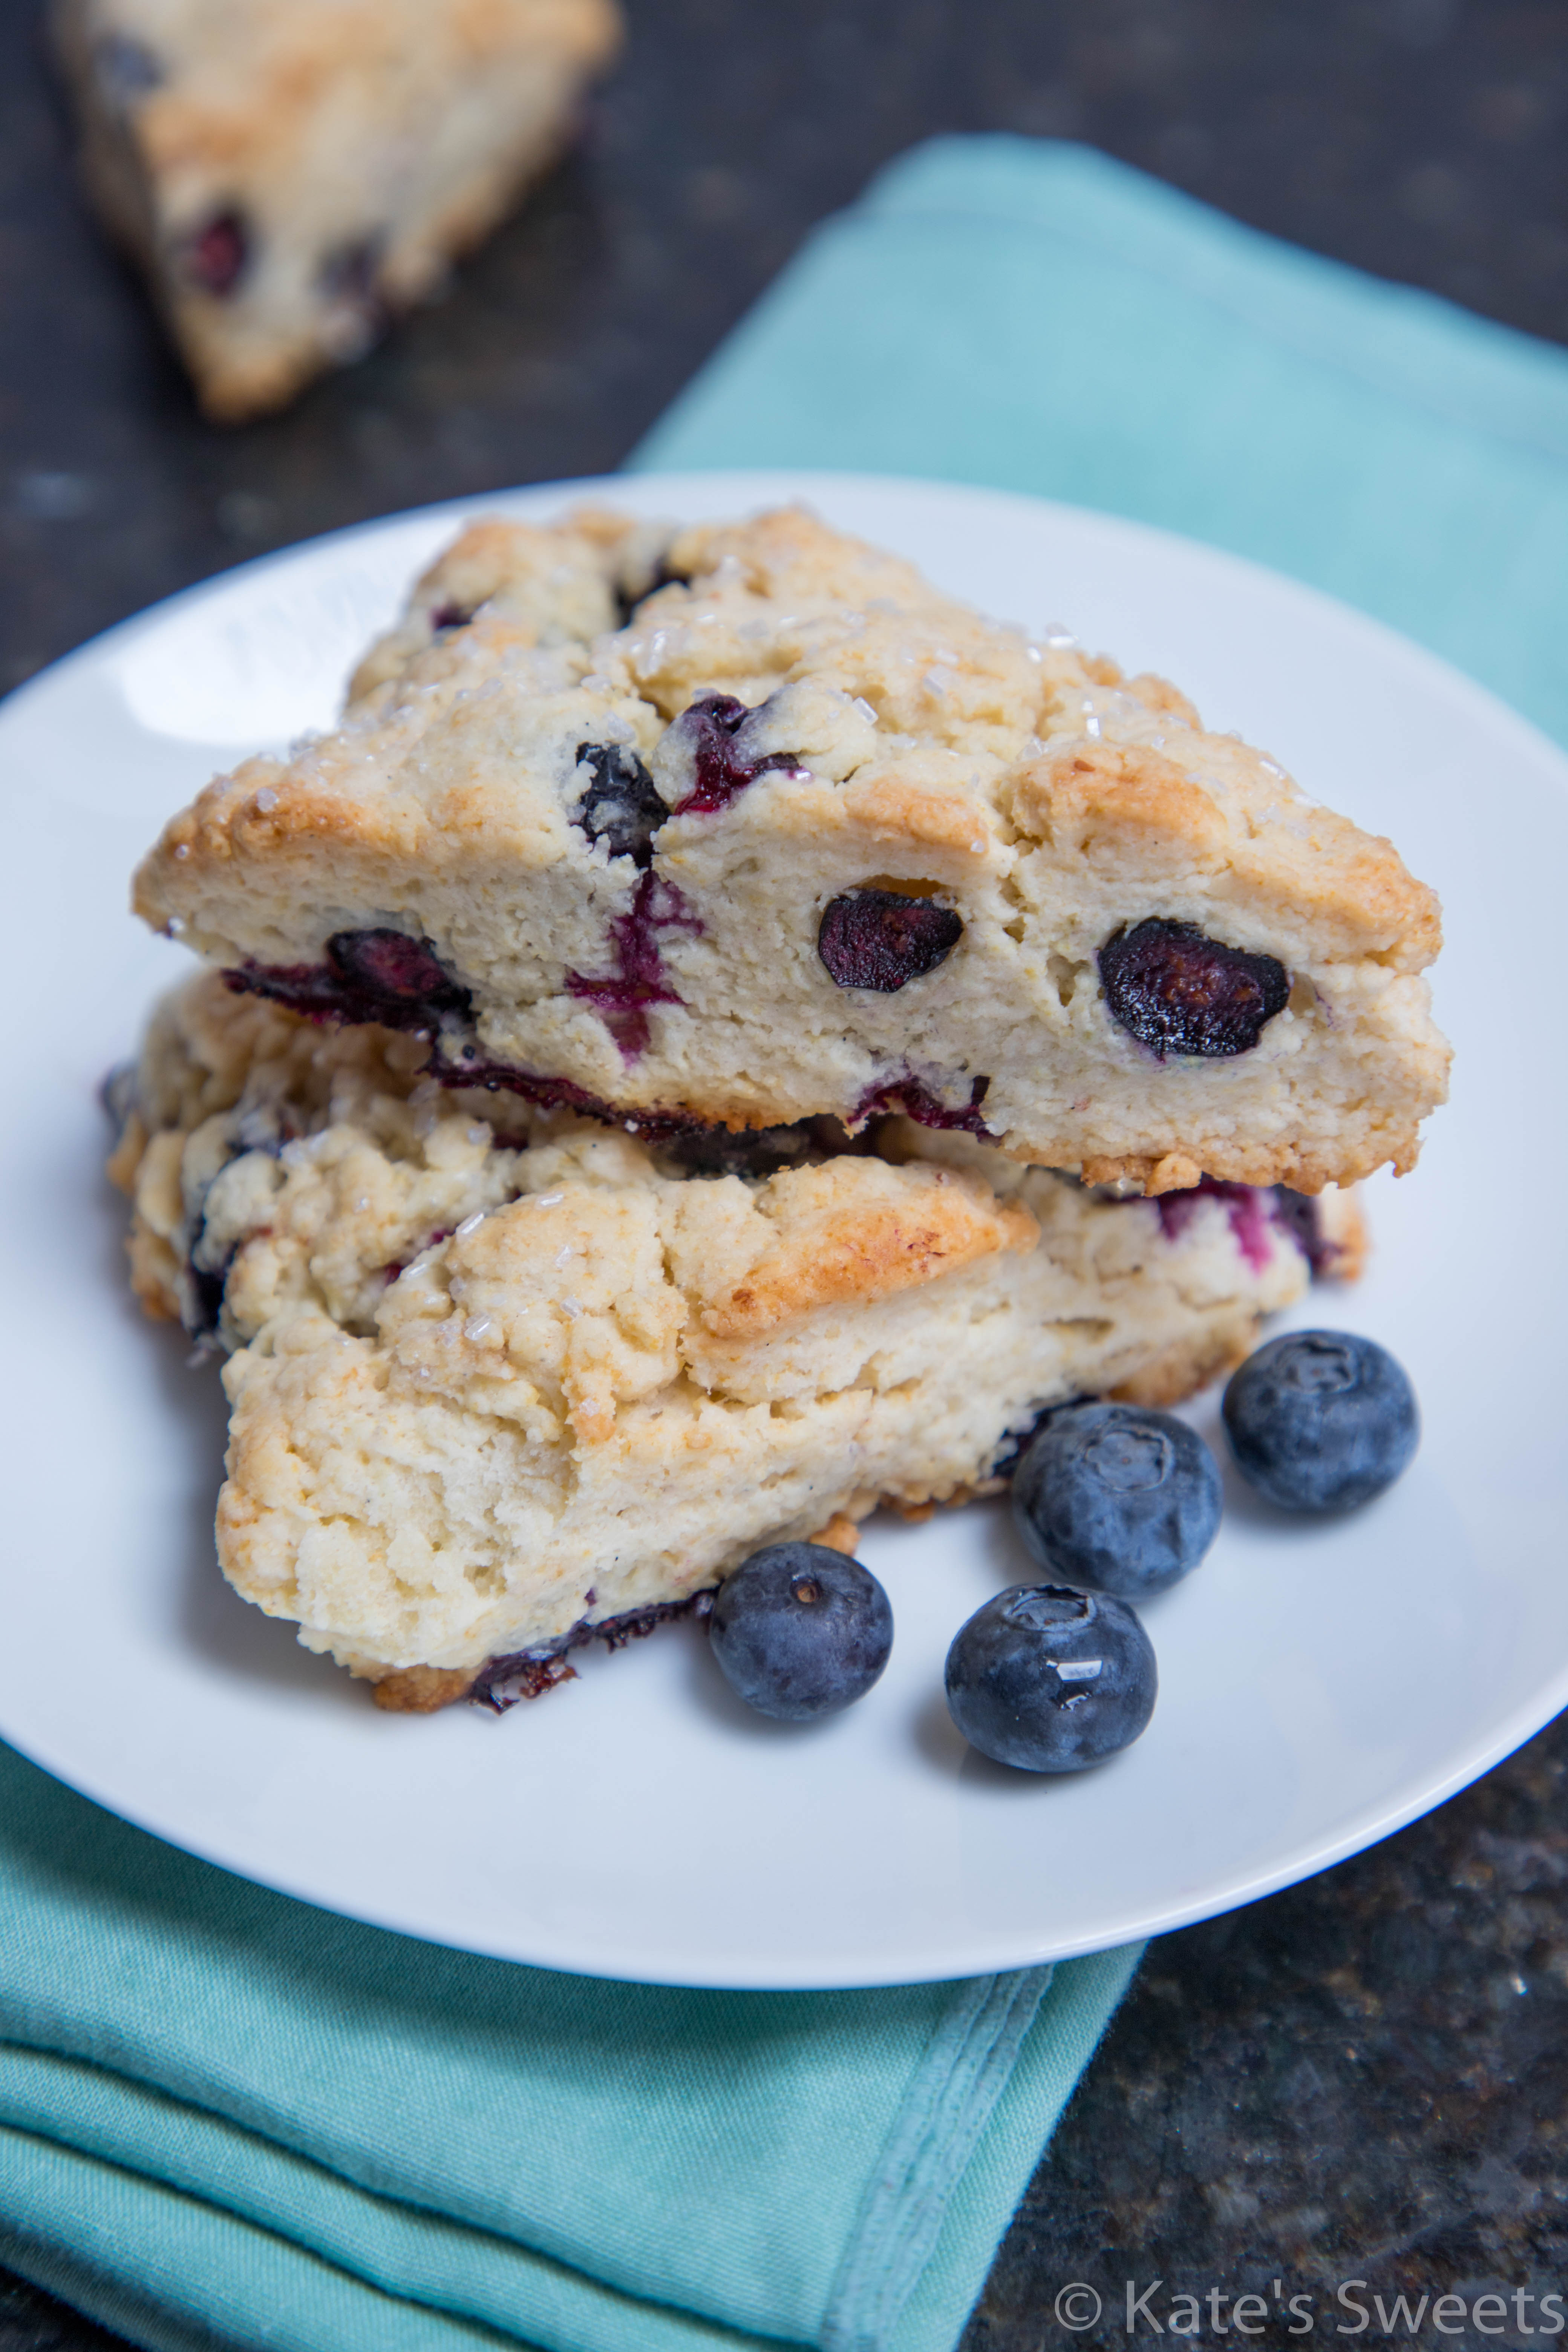 Homemade Blueberry Scones - Kate's Sweets